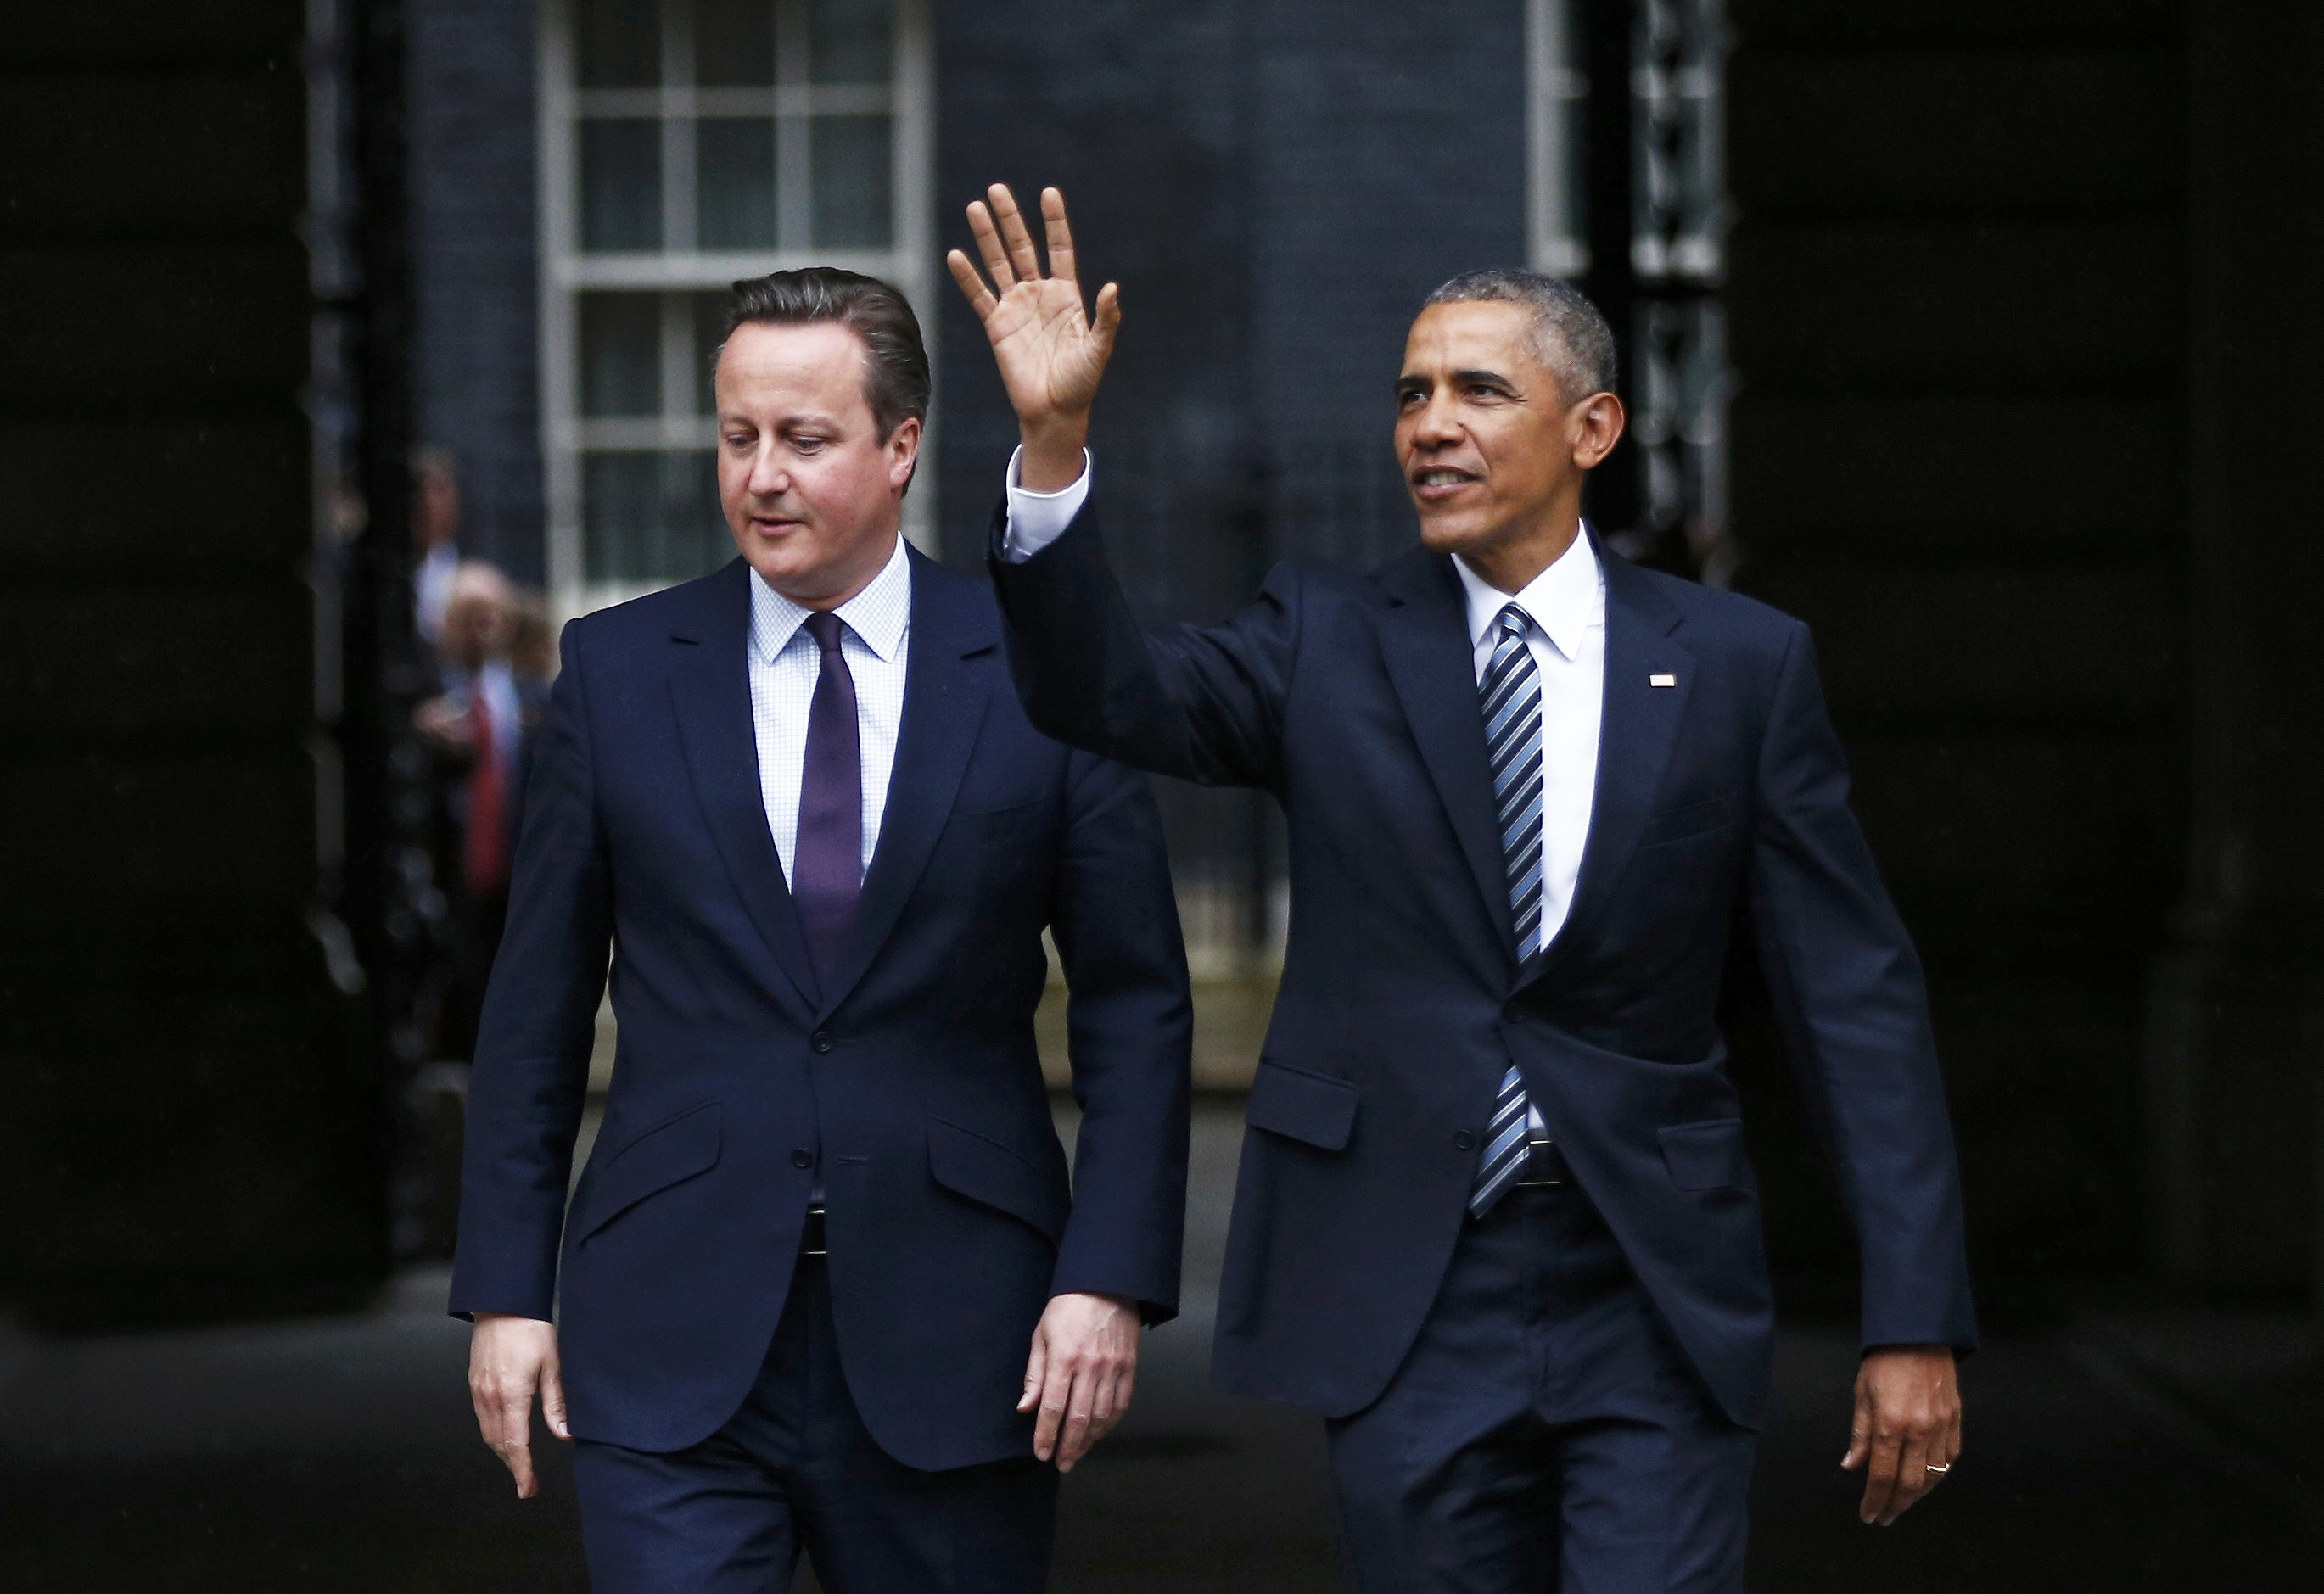 British Prime Minister David Cameron and US President Barack Obama leave Downing Street after their meeting on April 22, 2016 in London, England.  WPA Pool—Getty Images